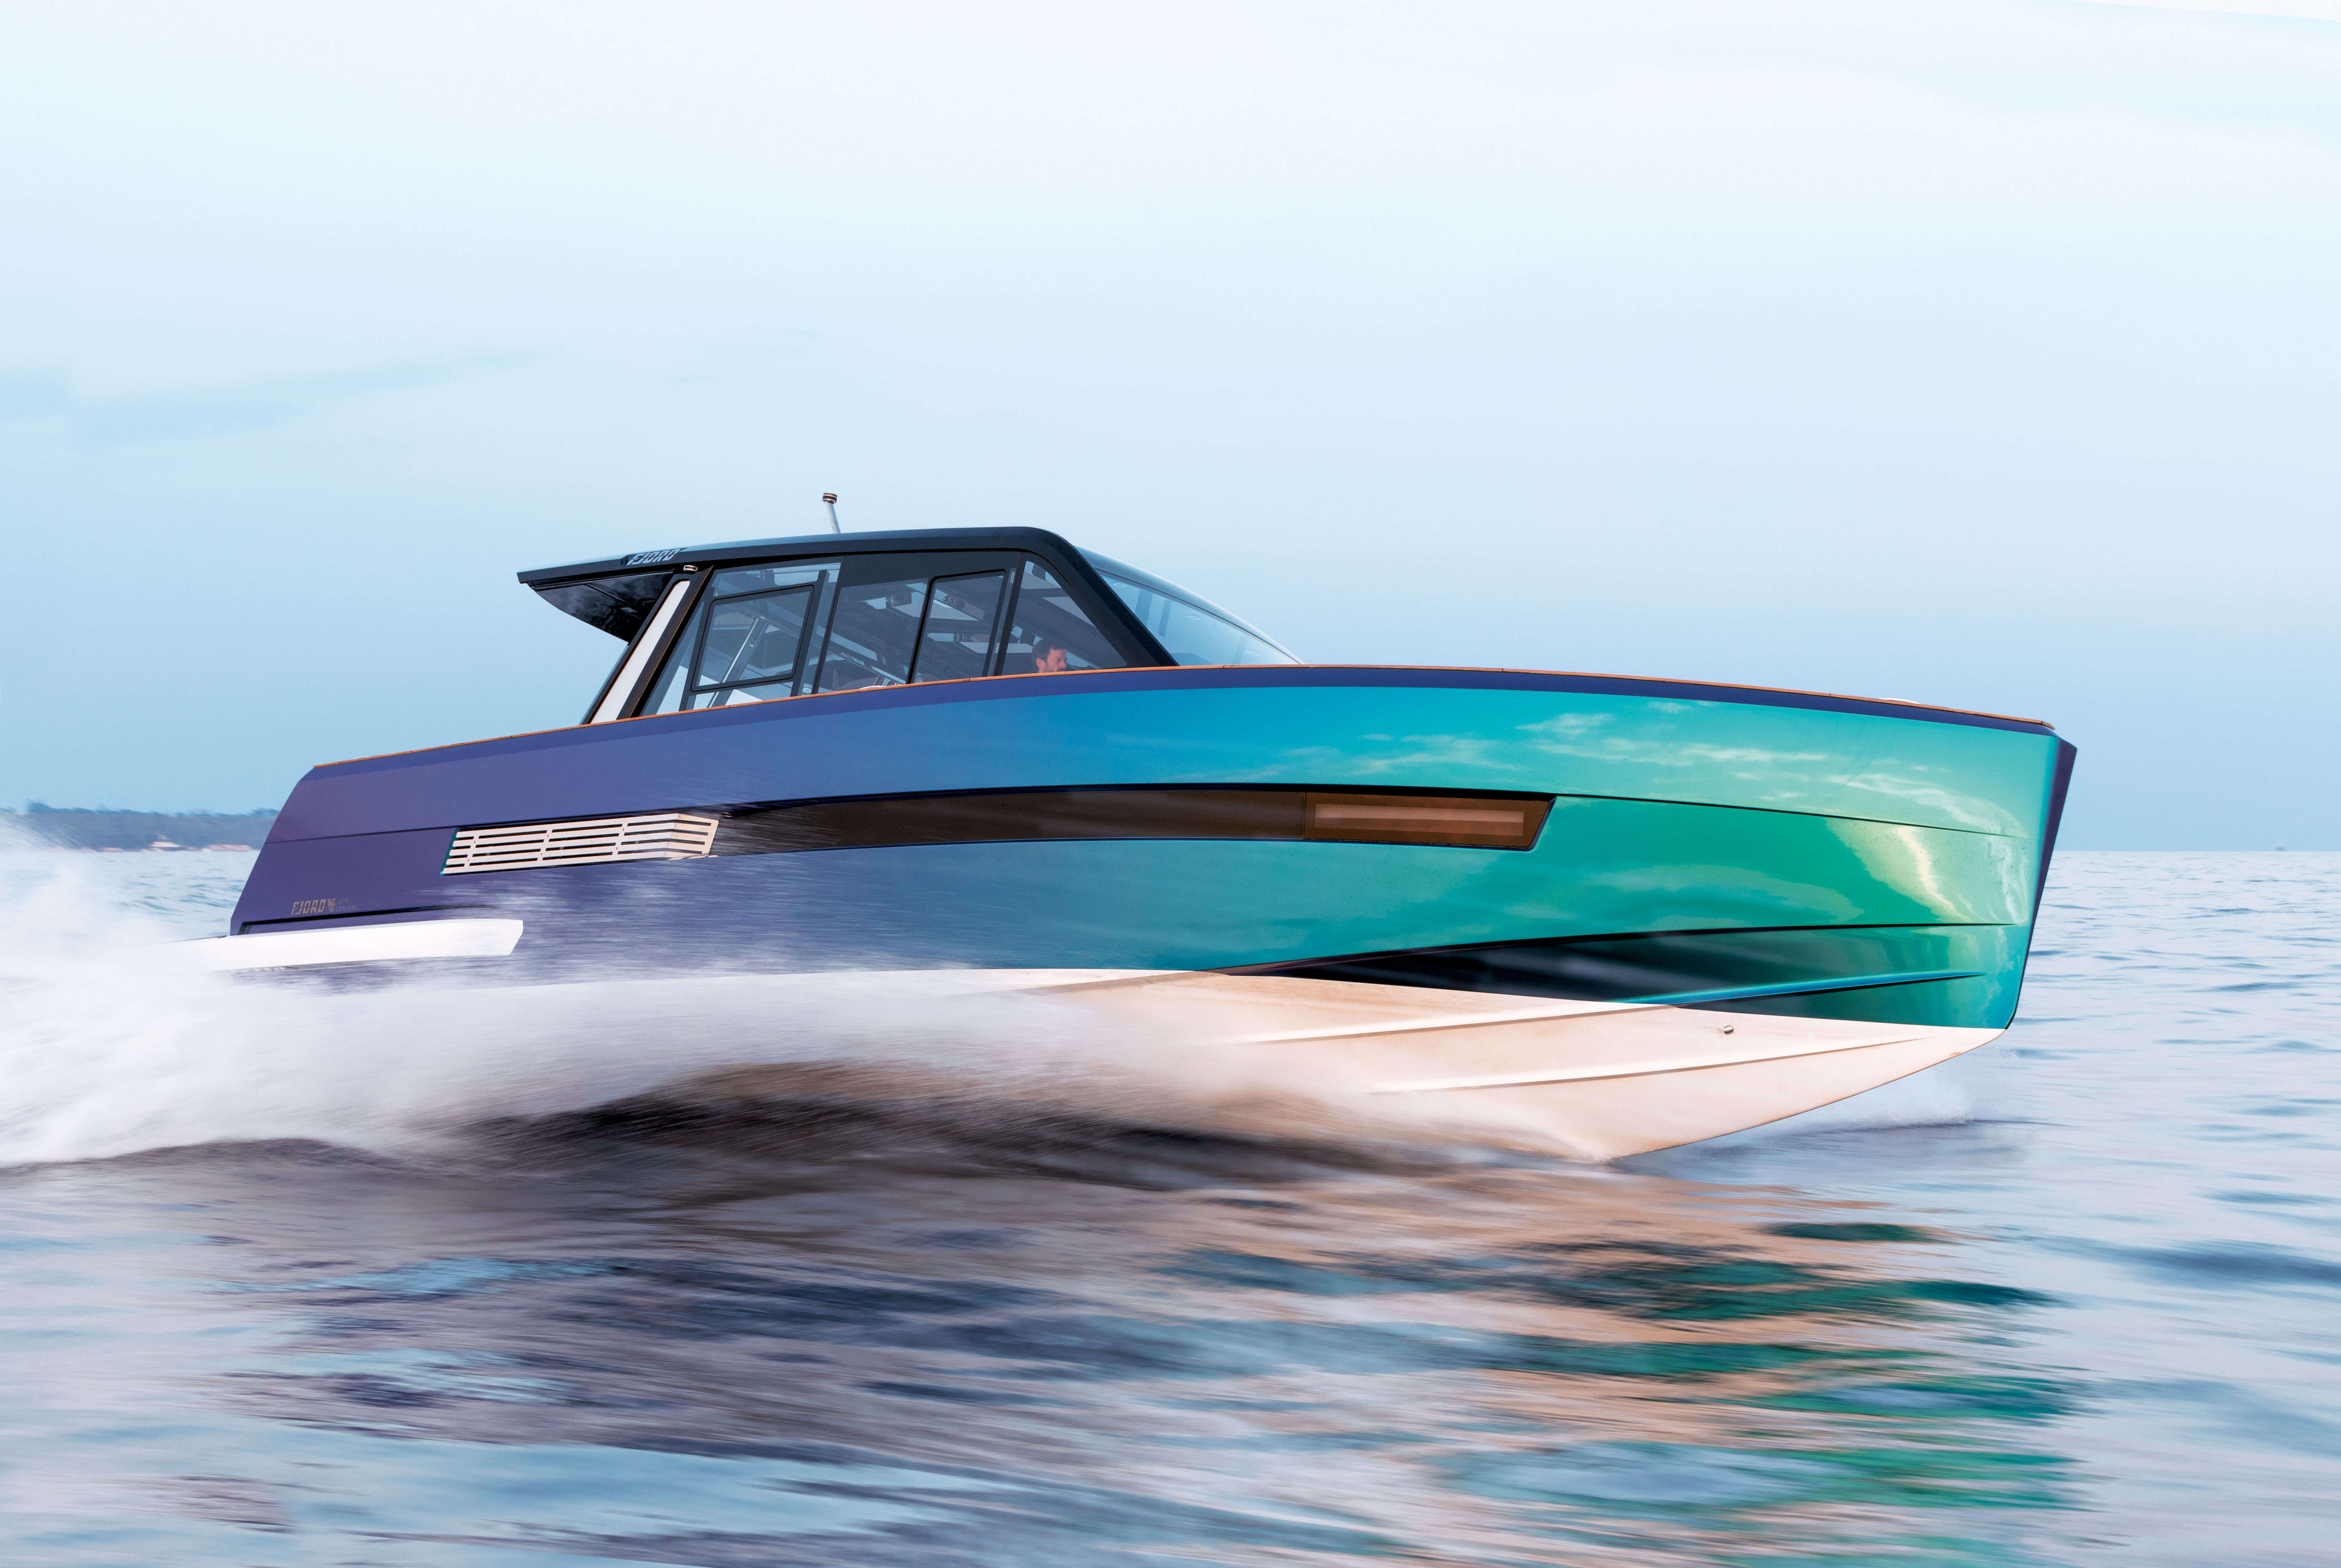 FJORD 44 coupé hull | FJORD can also develop special coating effects or multicoloured hull designs. | Fjord